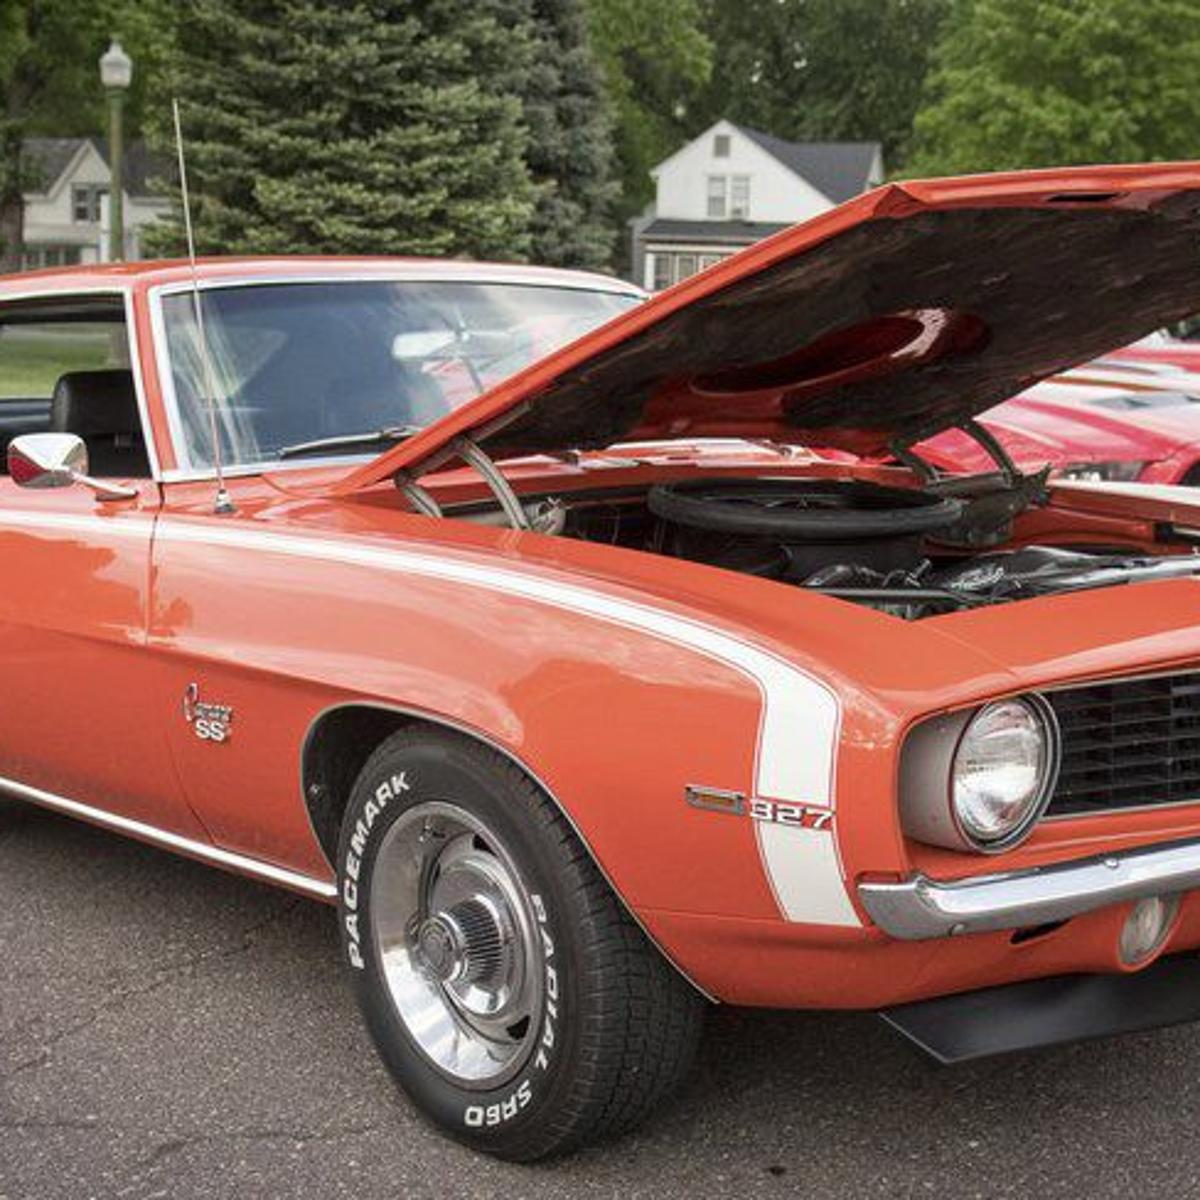 Car show hits its gear in Lake Crystal, Nicollet | Local News